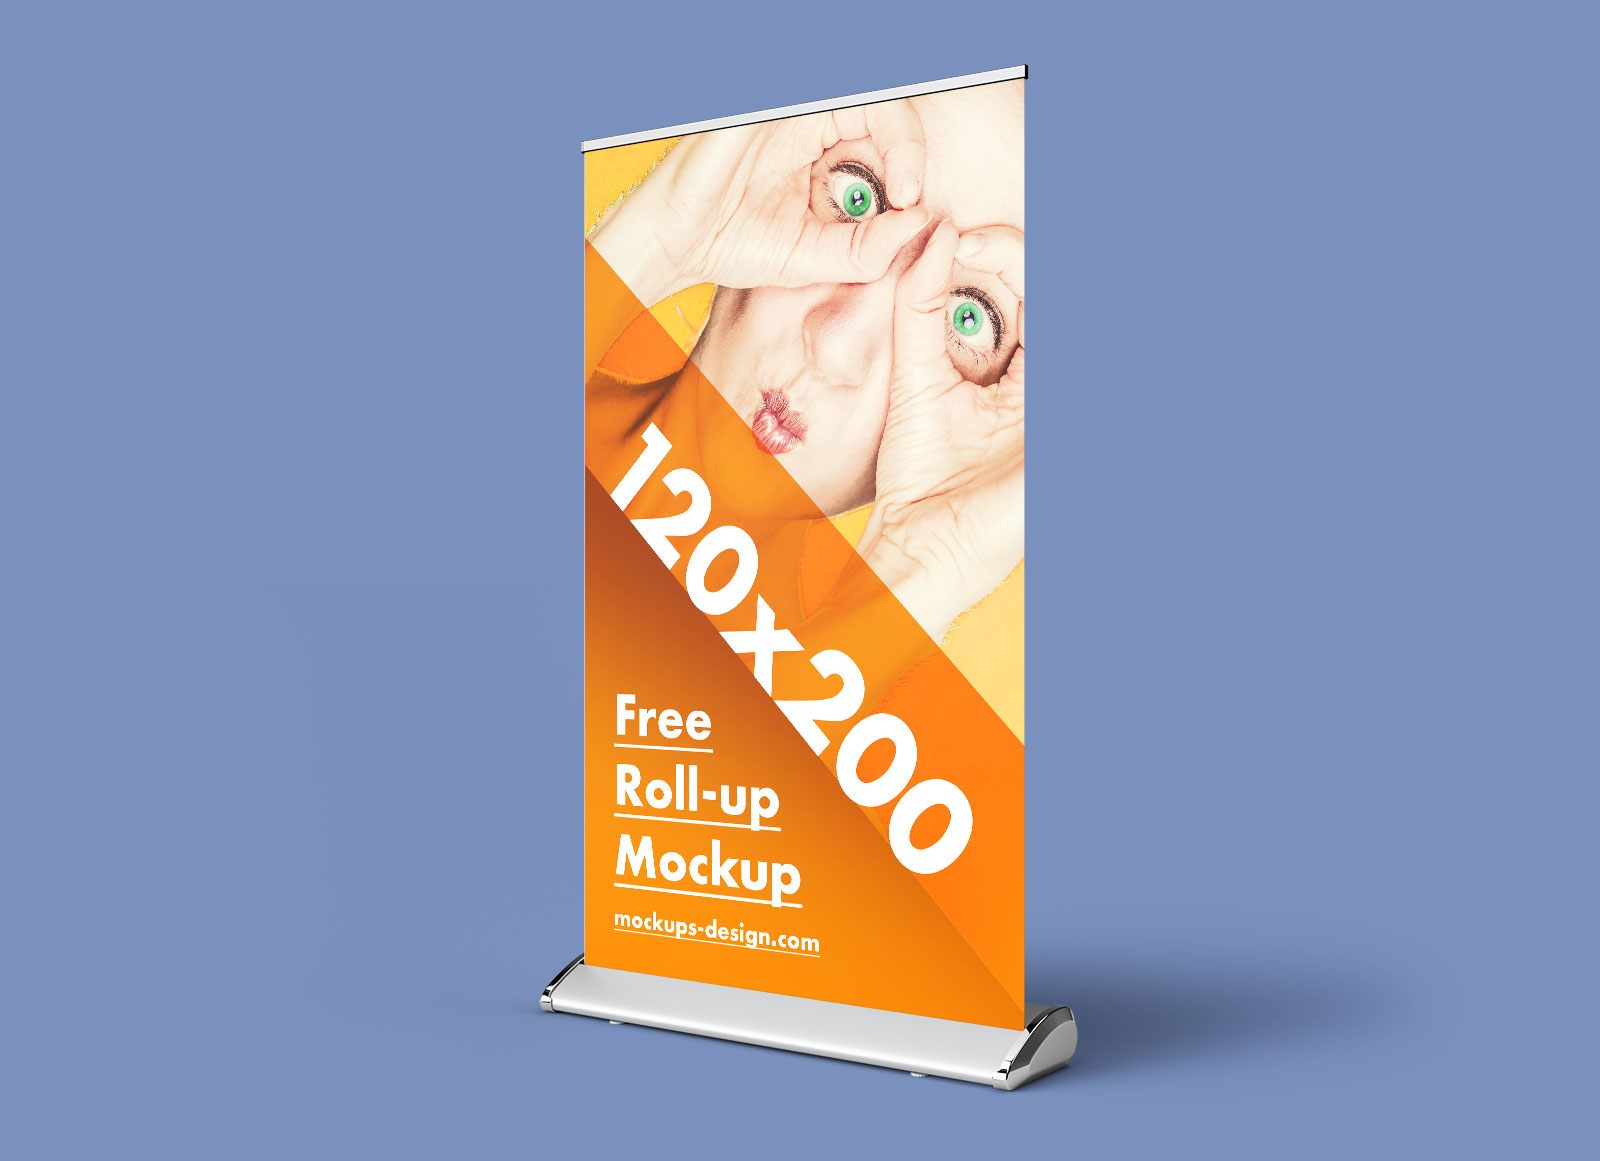 Free-Roll-Up-Banner-Display-Stand-Mockup-PSD-Set